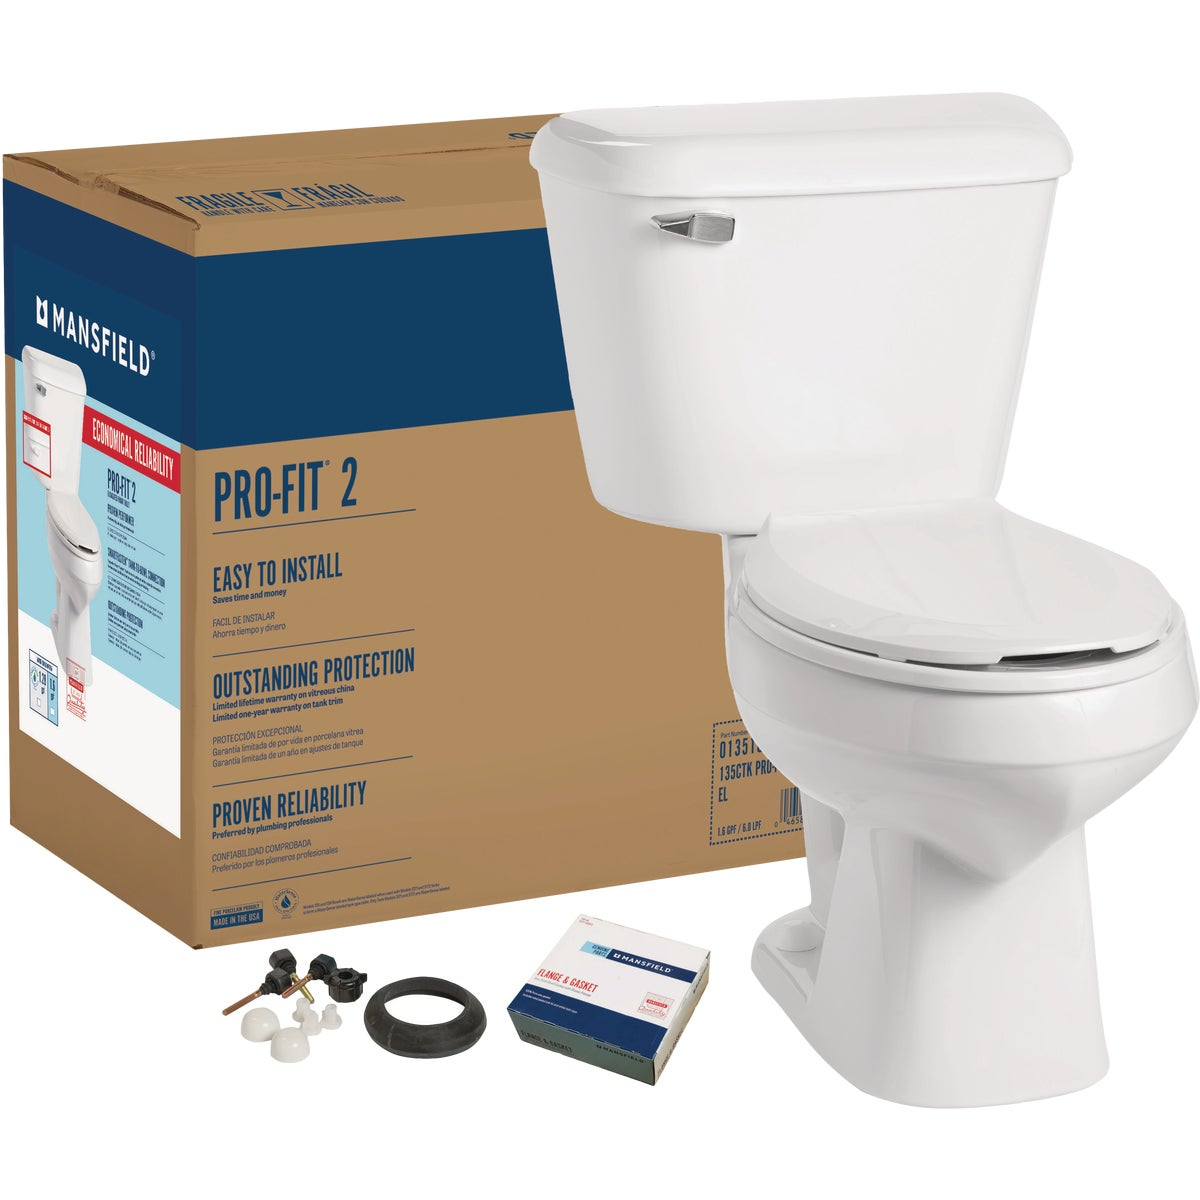 WHITE ELONGATED TOILET - 013510017 by Mansfield Plumbing